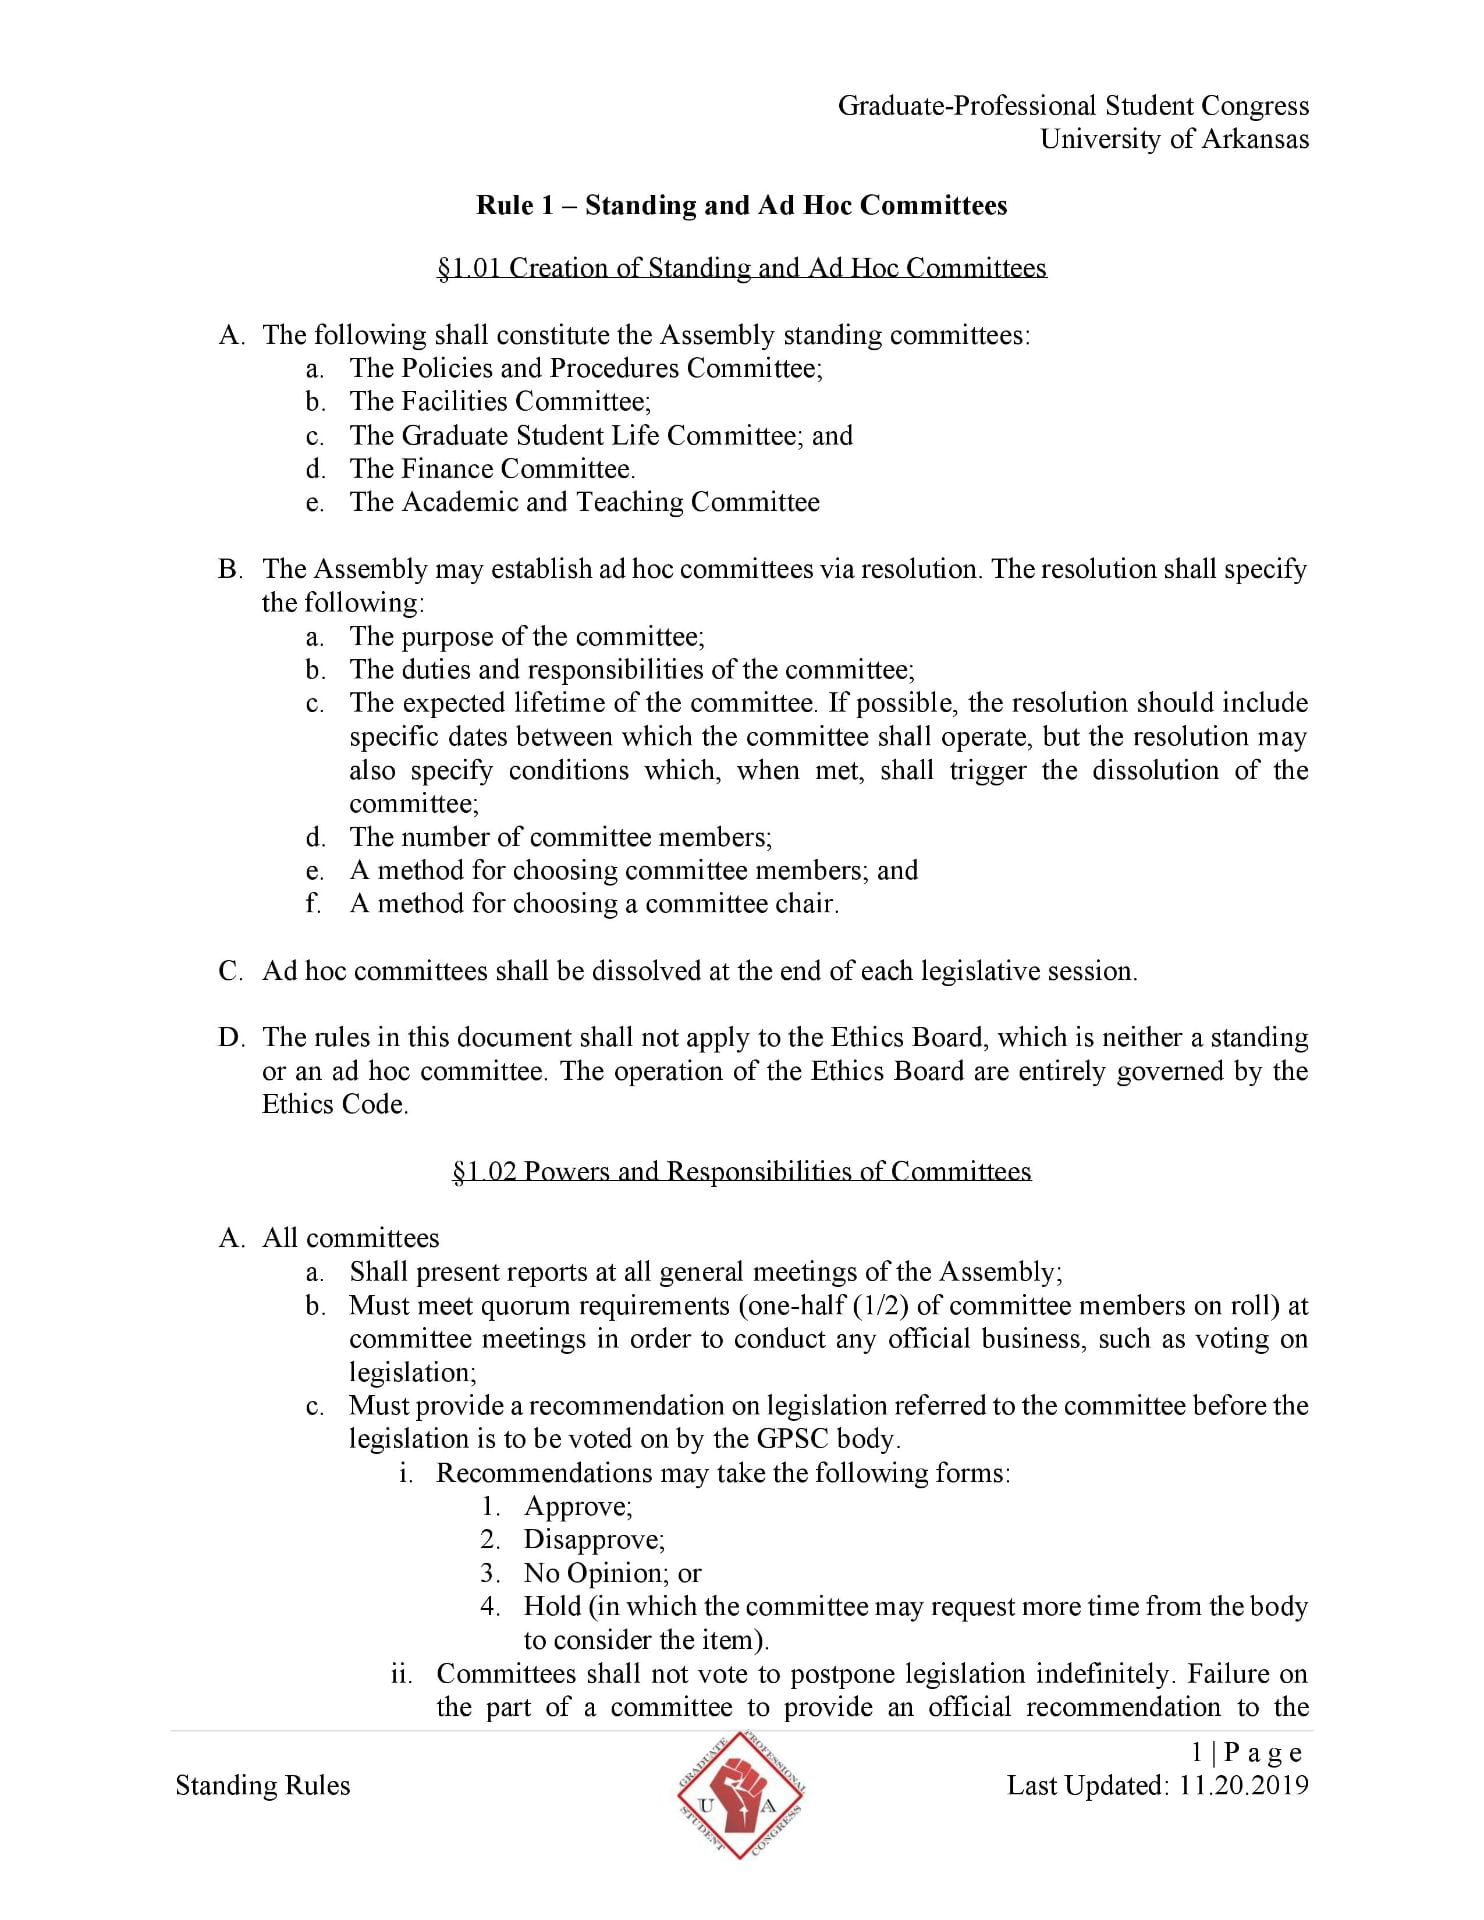 First page of the GPSC Standing Rules